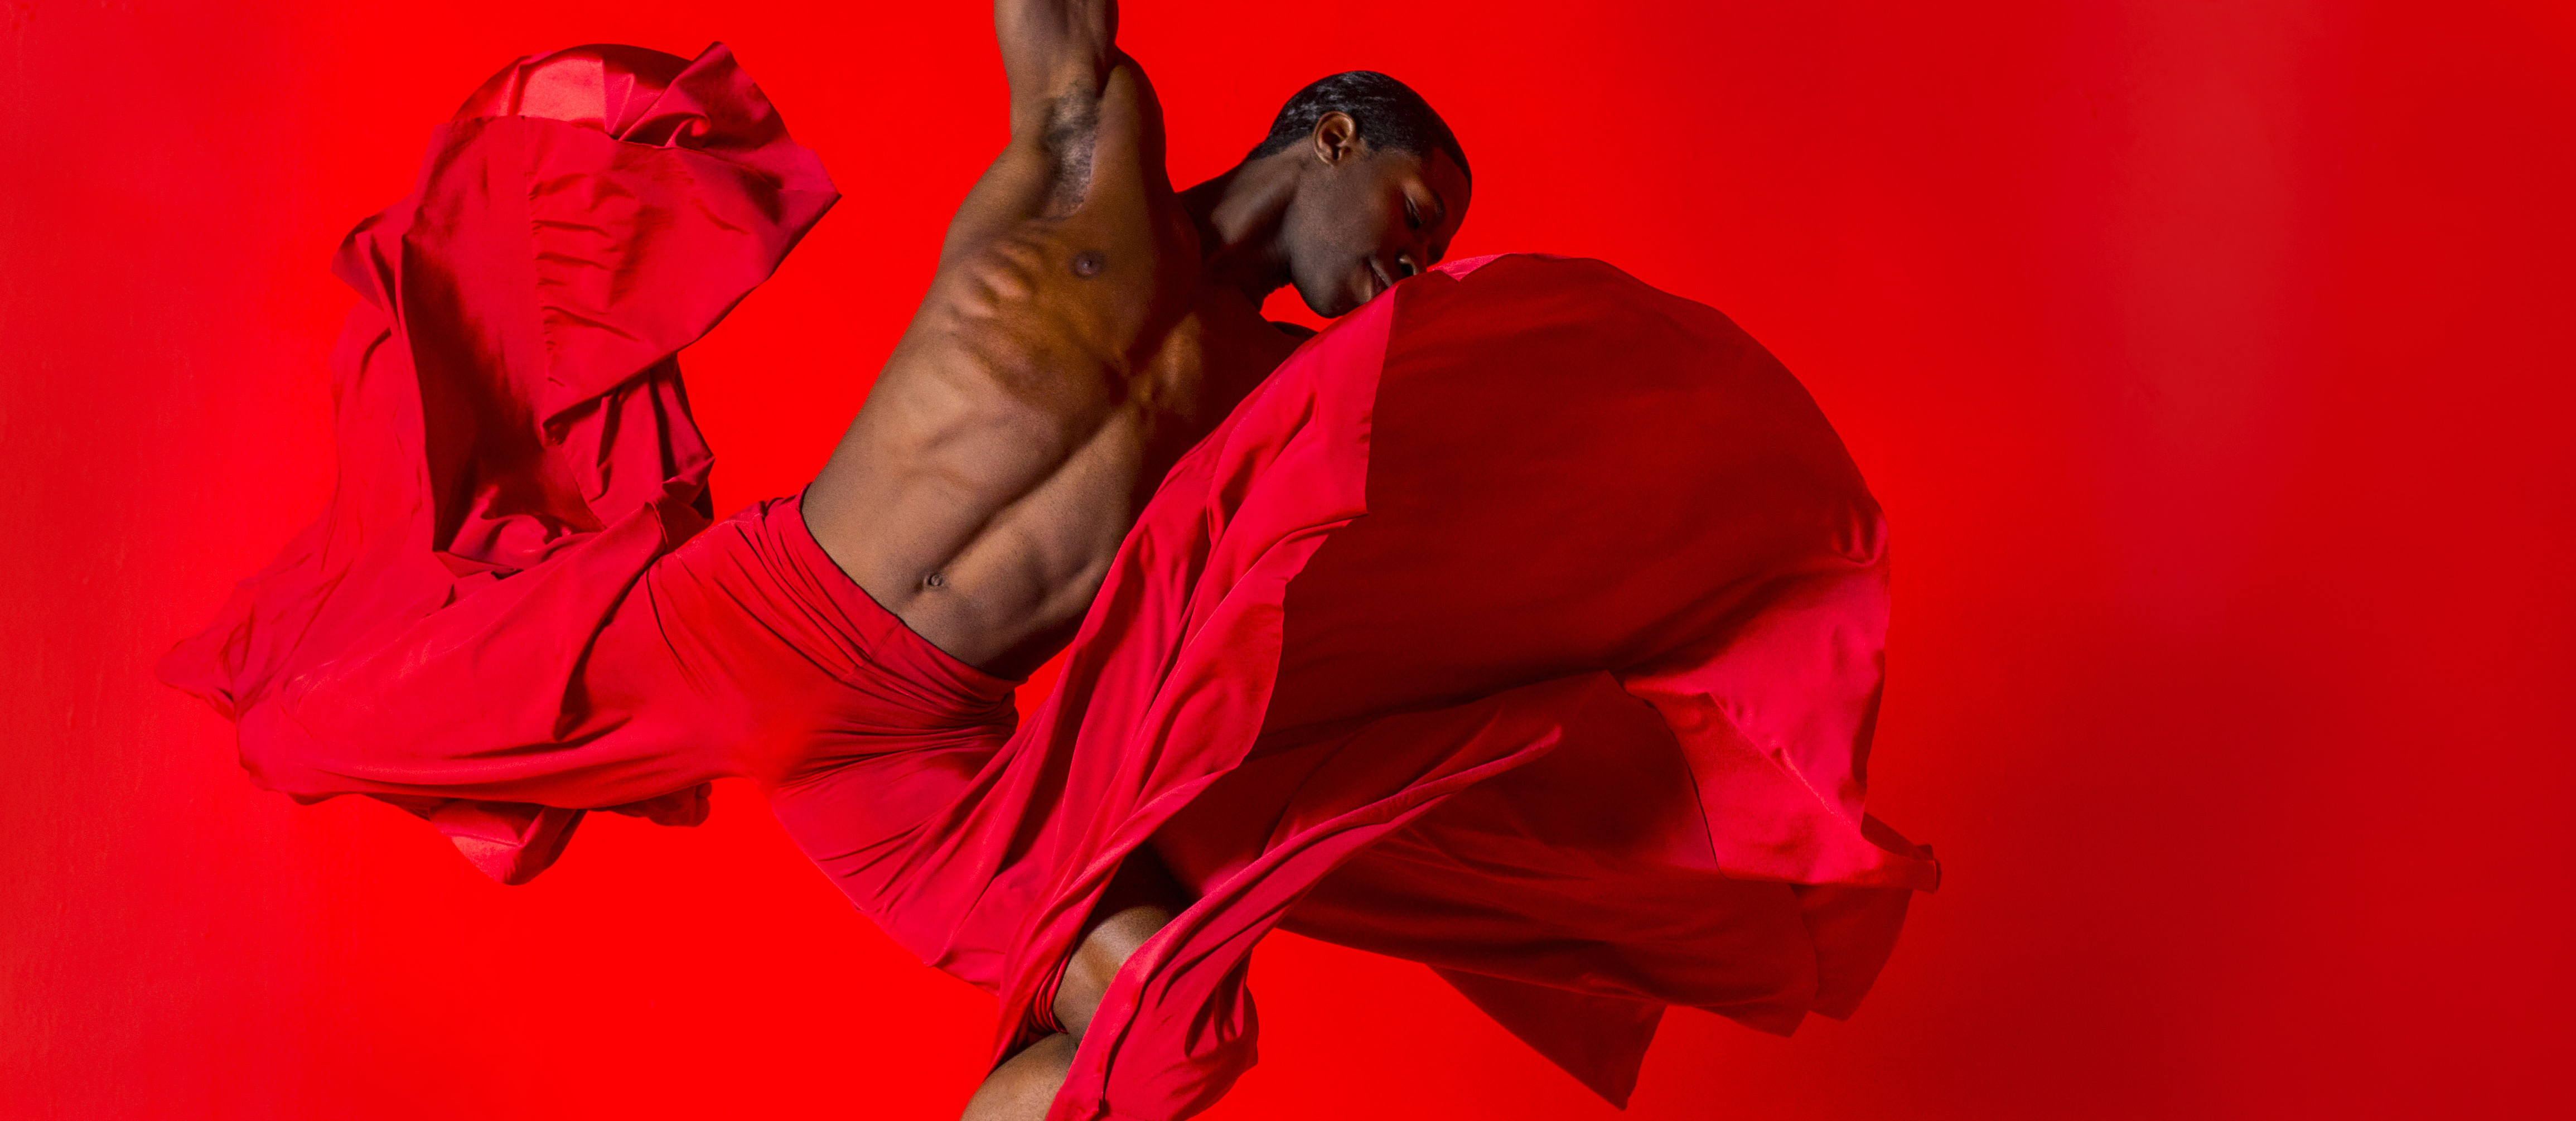 Dance for Life is back for 2021 with an in-person event at the Pritzker Pavilion in August. Pictured: Devin Buchanan.